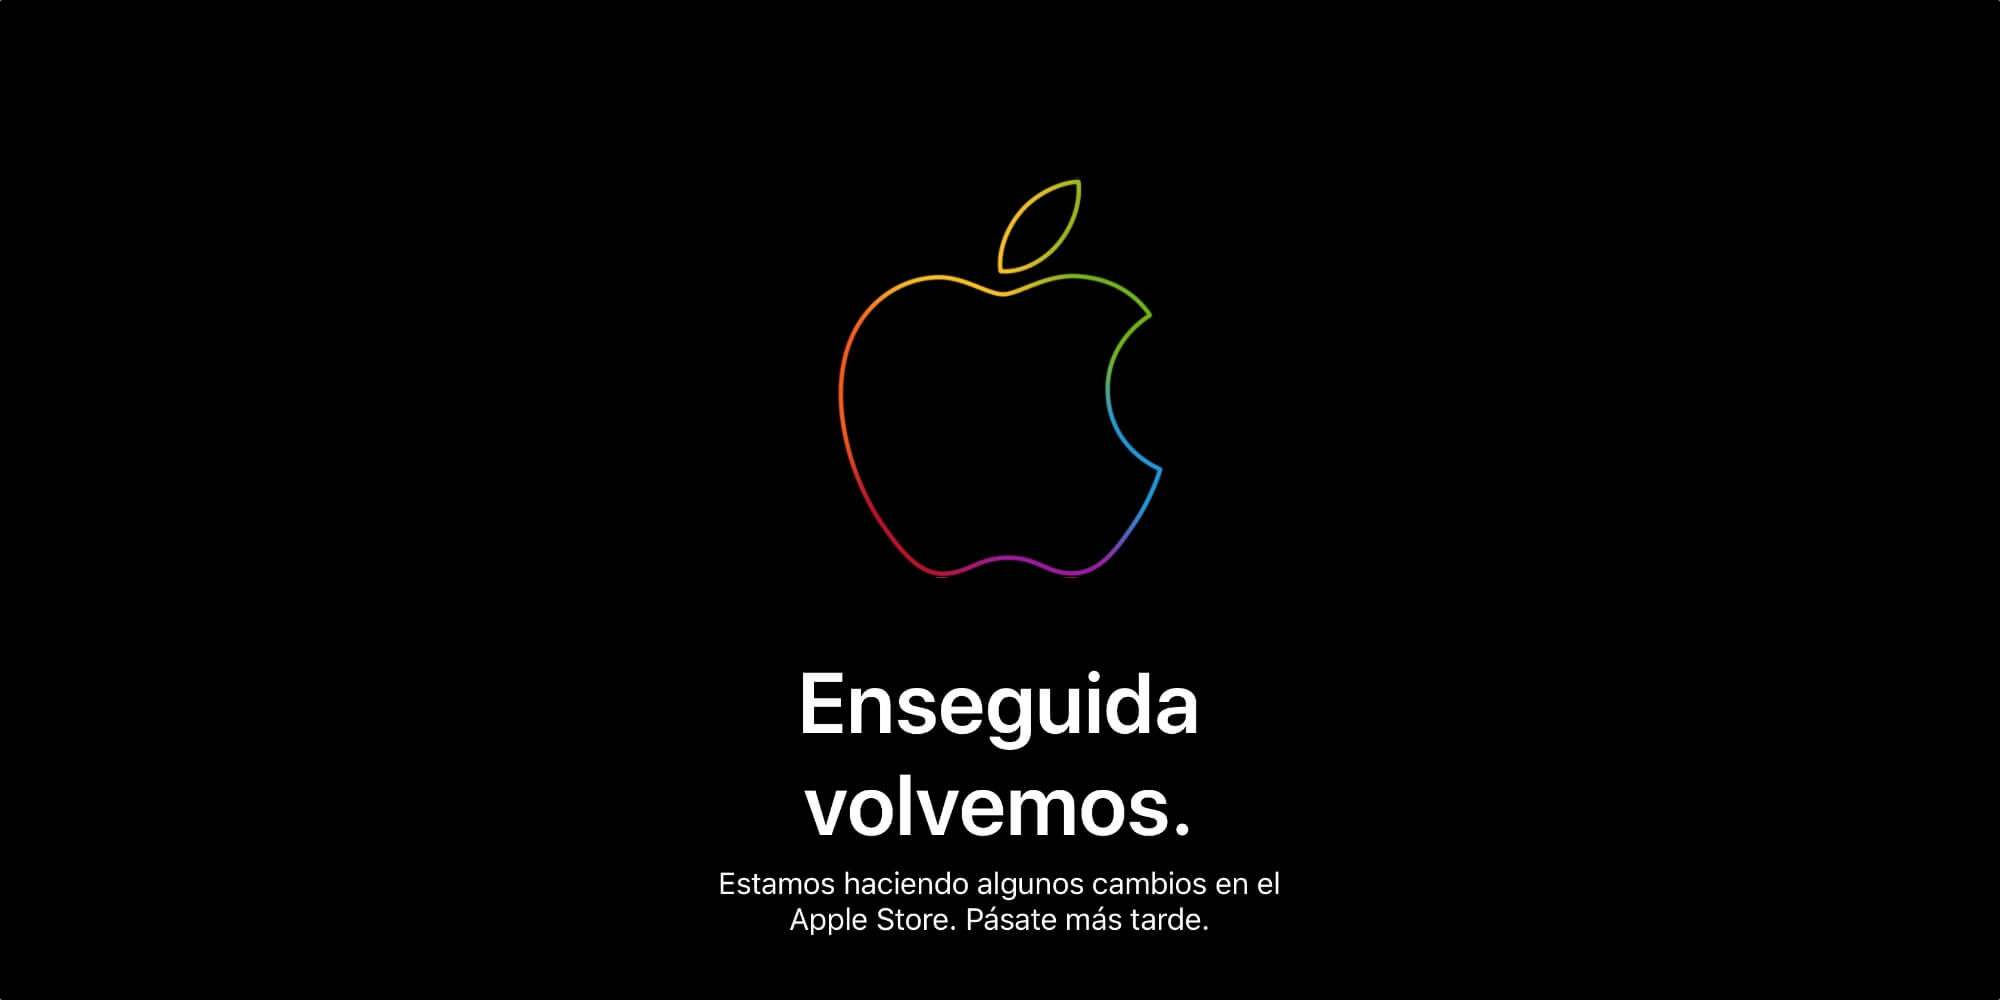 Enseguida volvemos - Apple Store